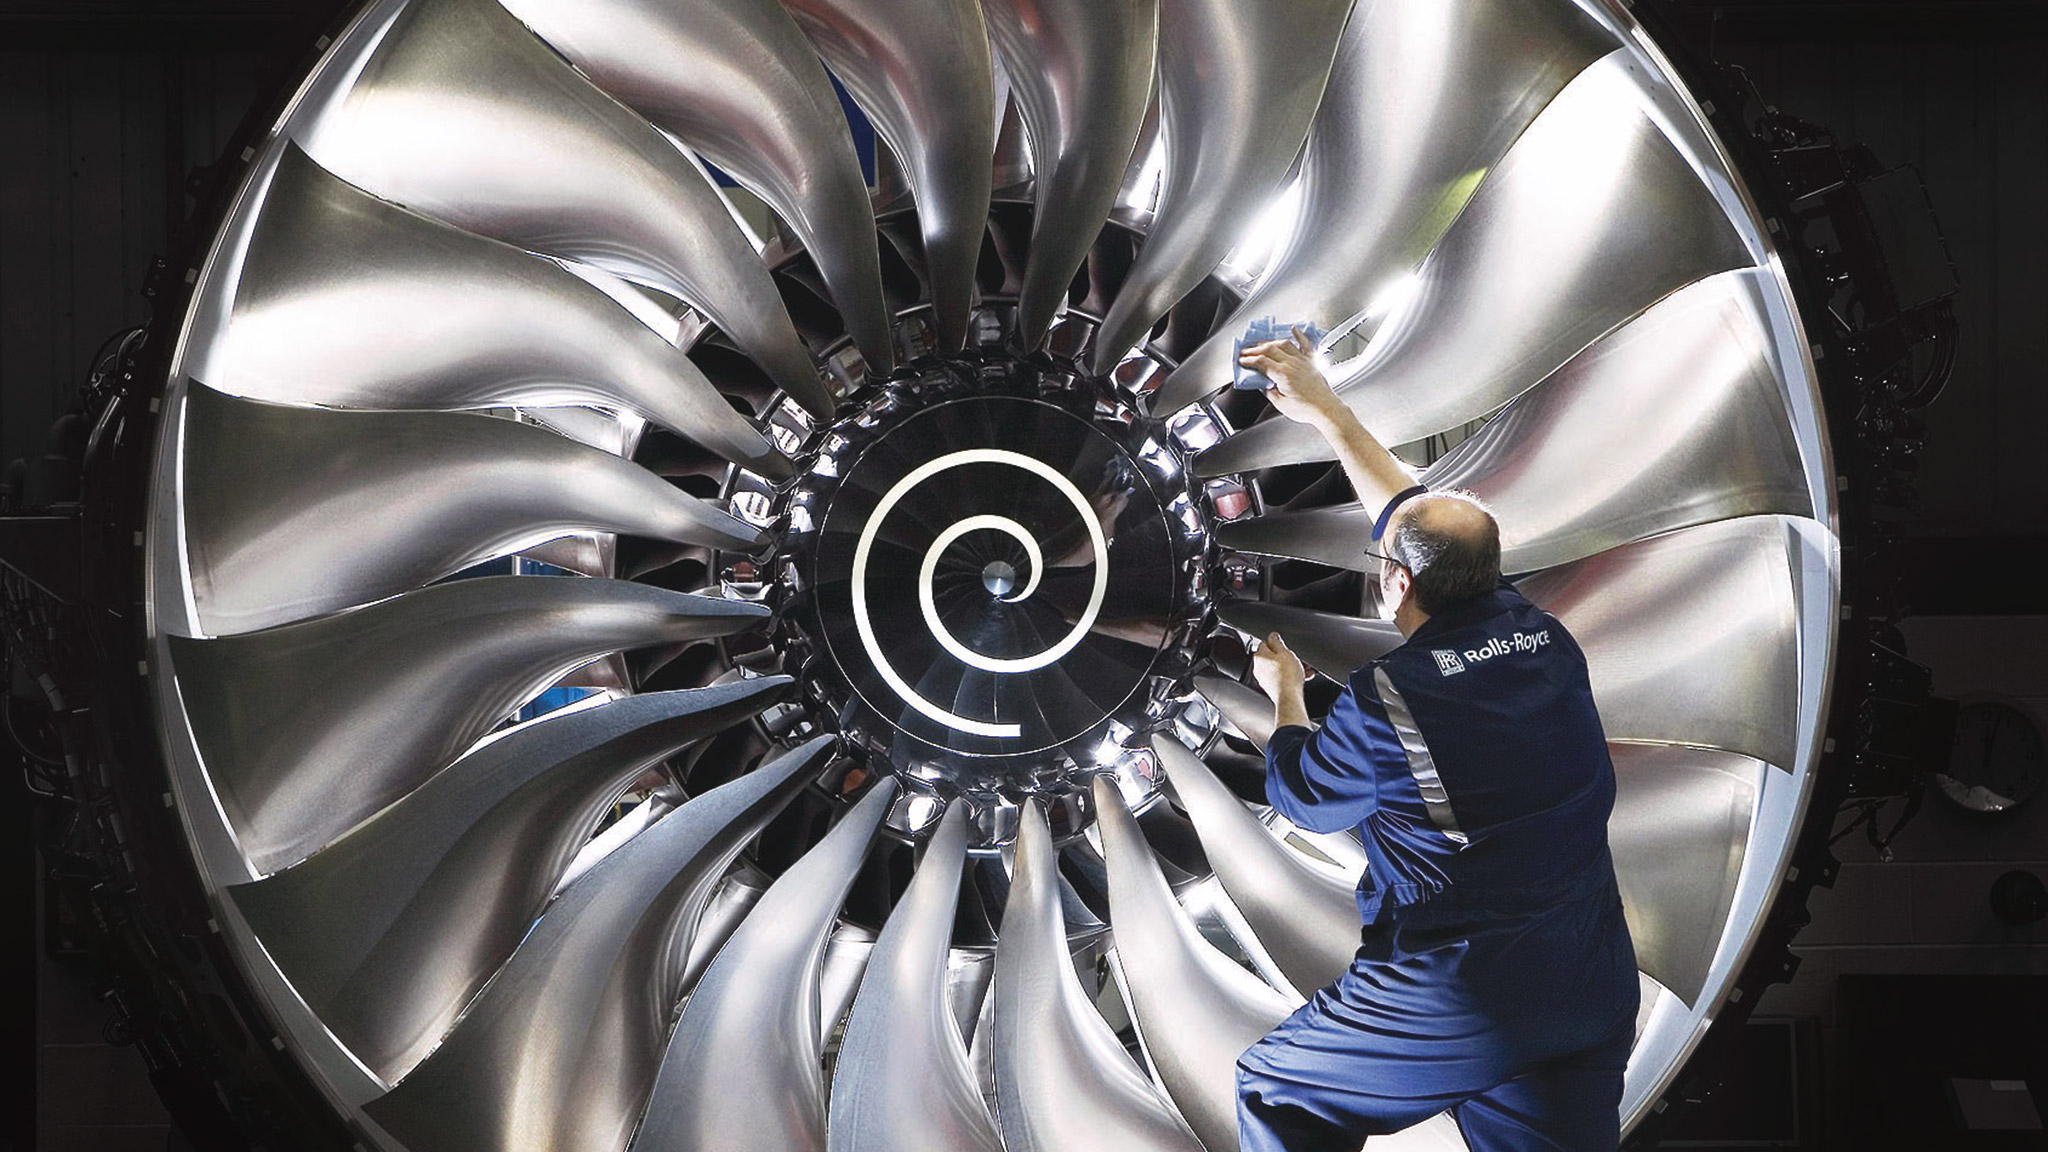 Rolls Royce seeks to catch up with rivals on margins